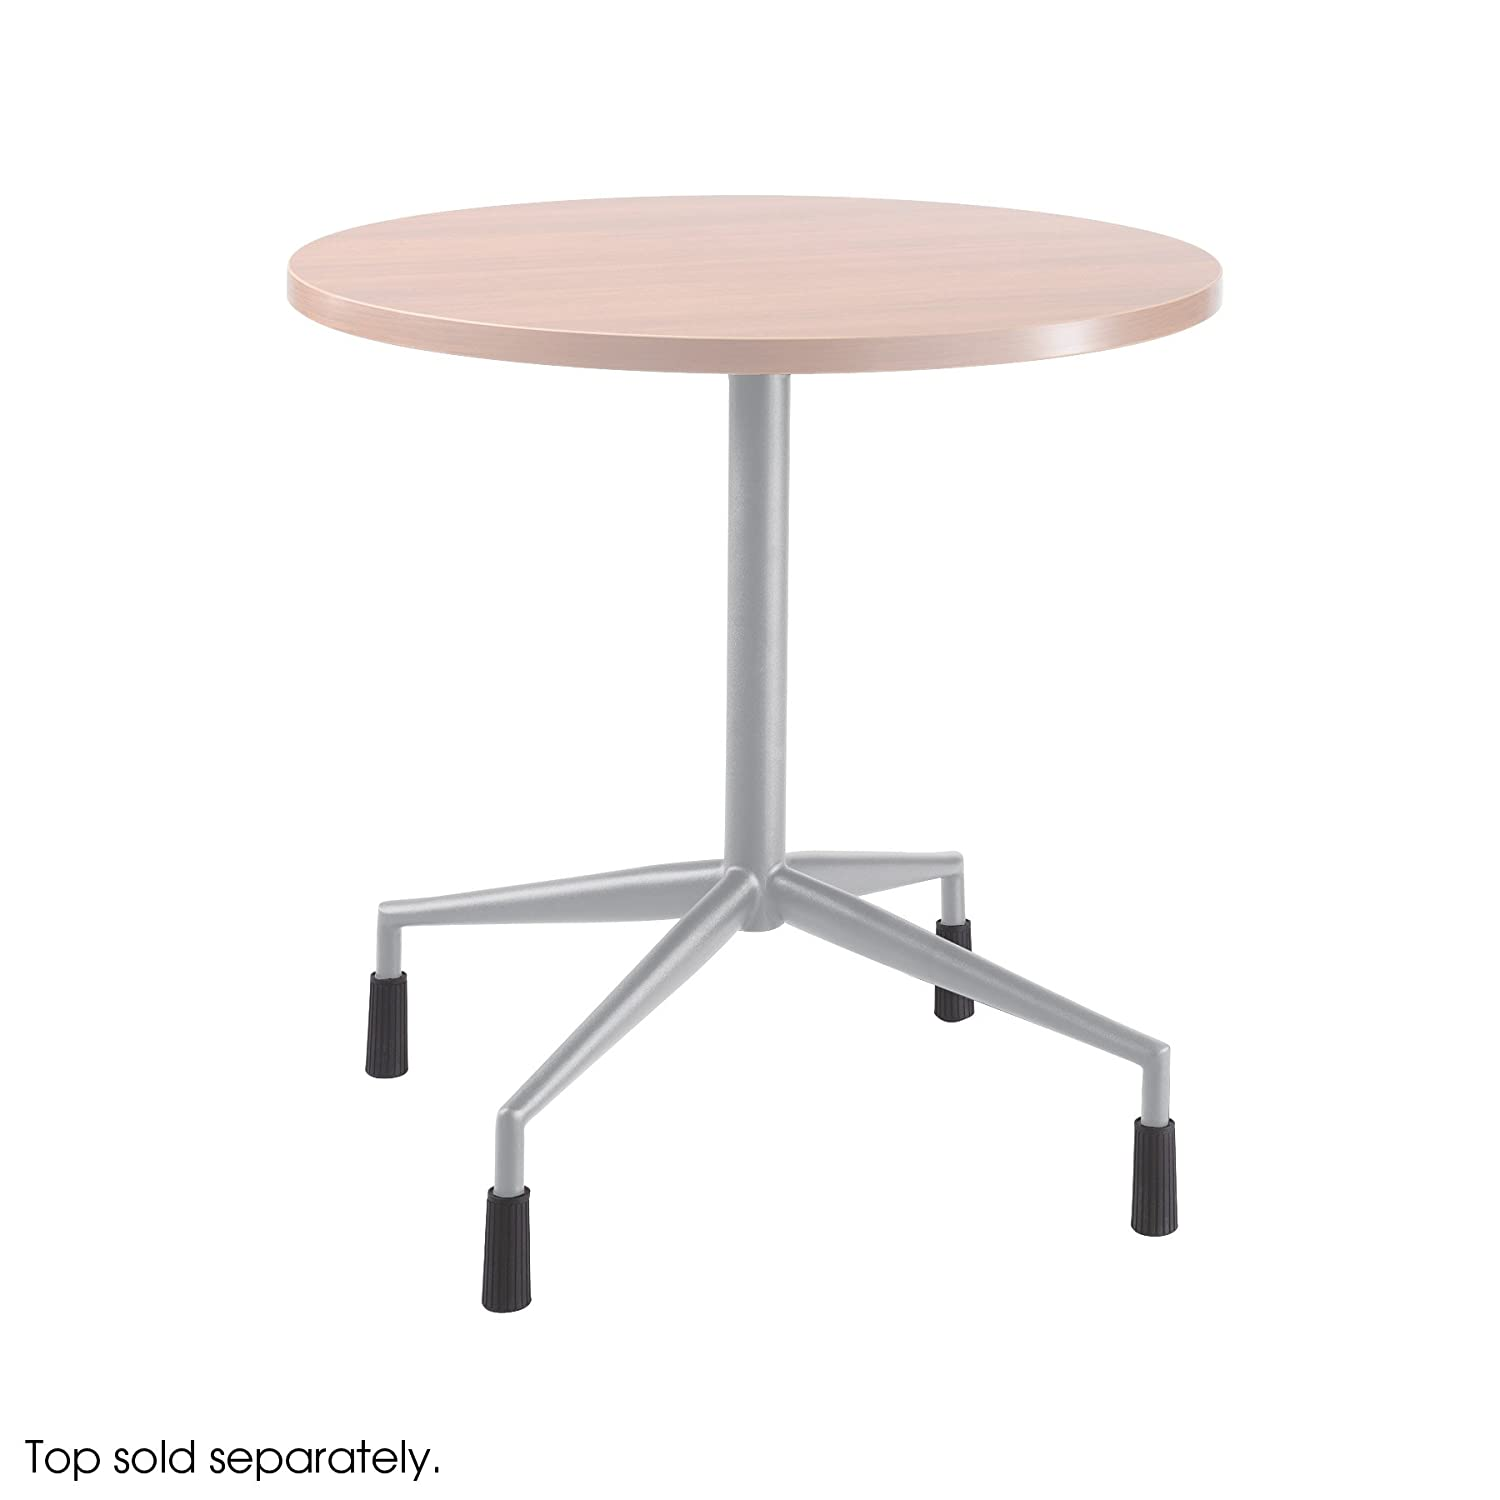 Black Top sold separately Safco Products 2656BL RSVP  Fixed Height Base with 4 Levelers